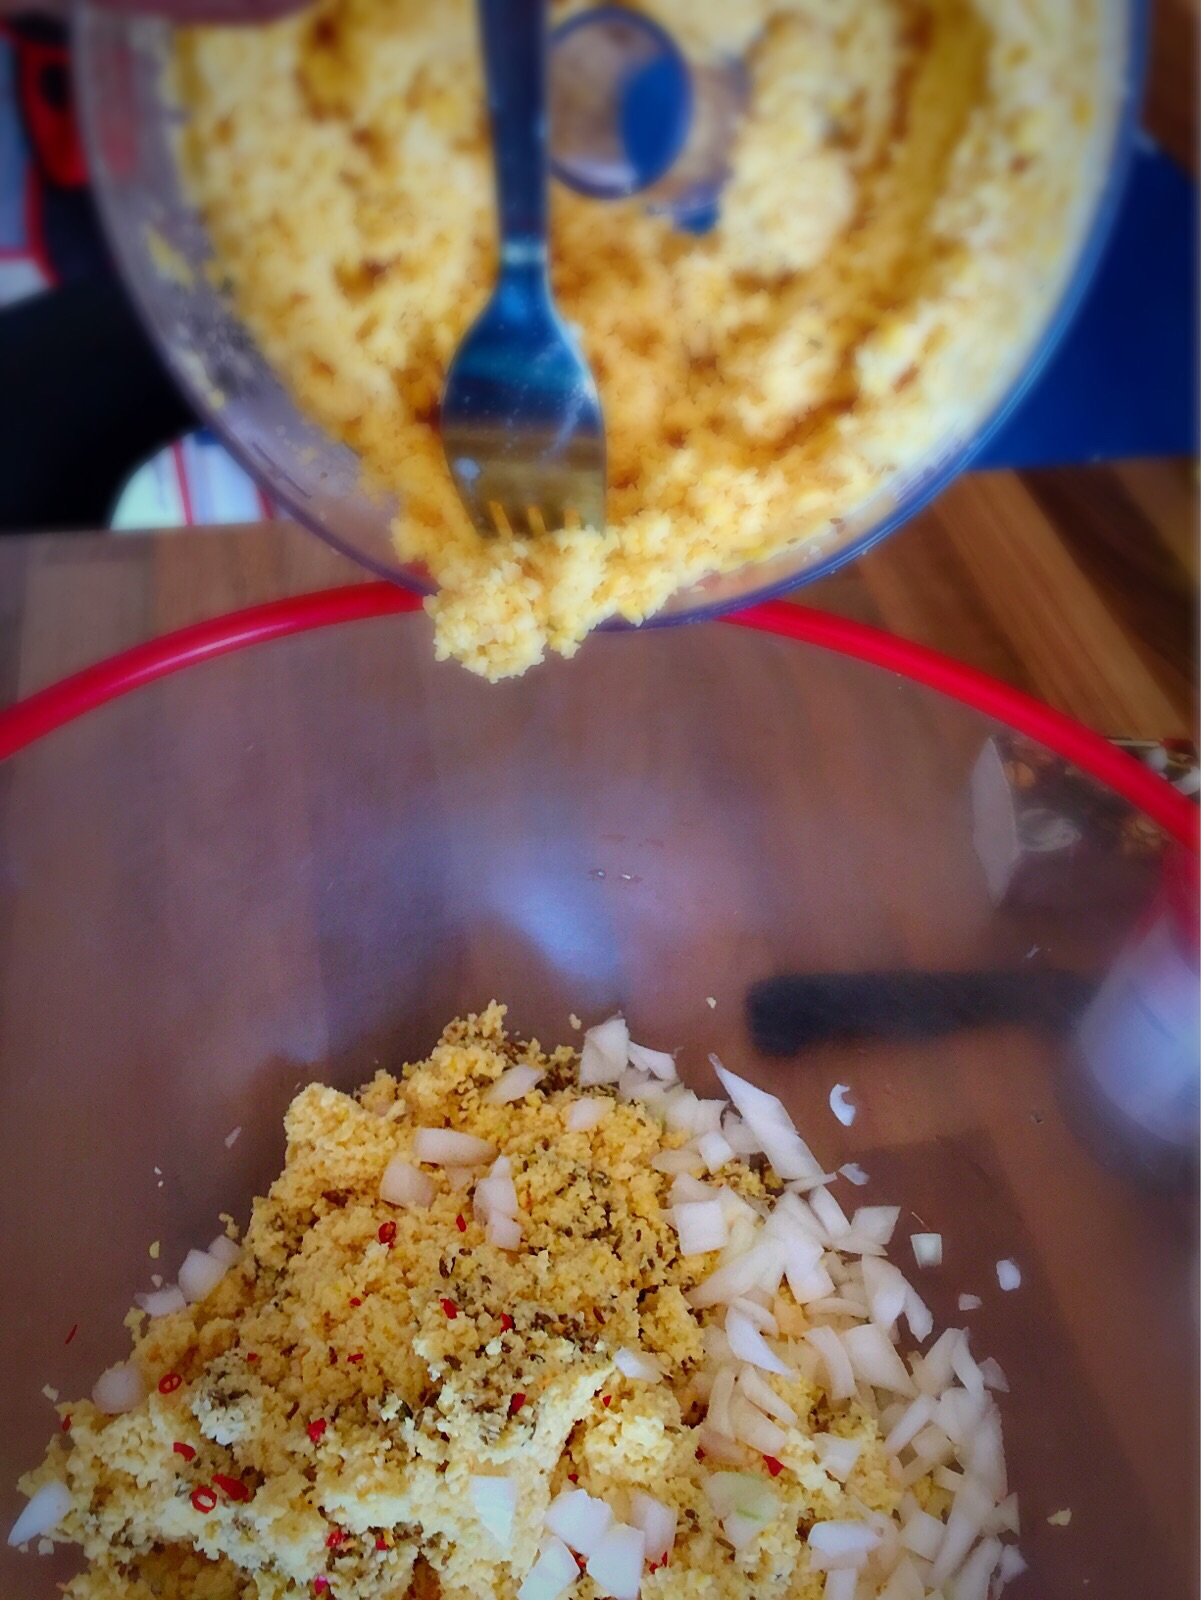 """Gâteaux piment"""" or """"Mauritian Chili Poppers""""made with yellow s..."""